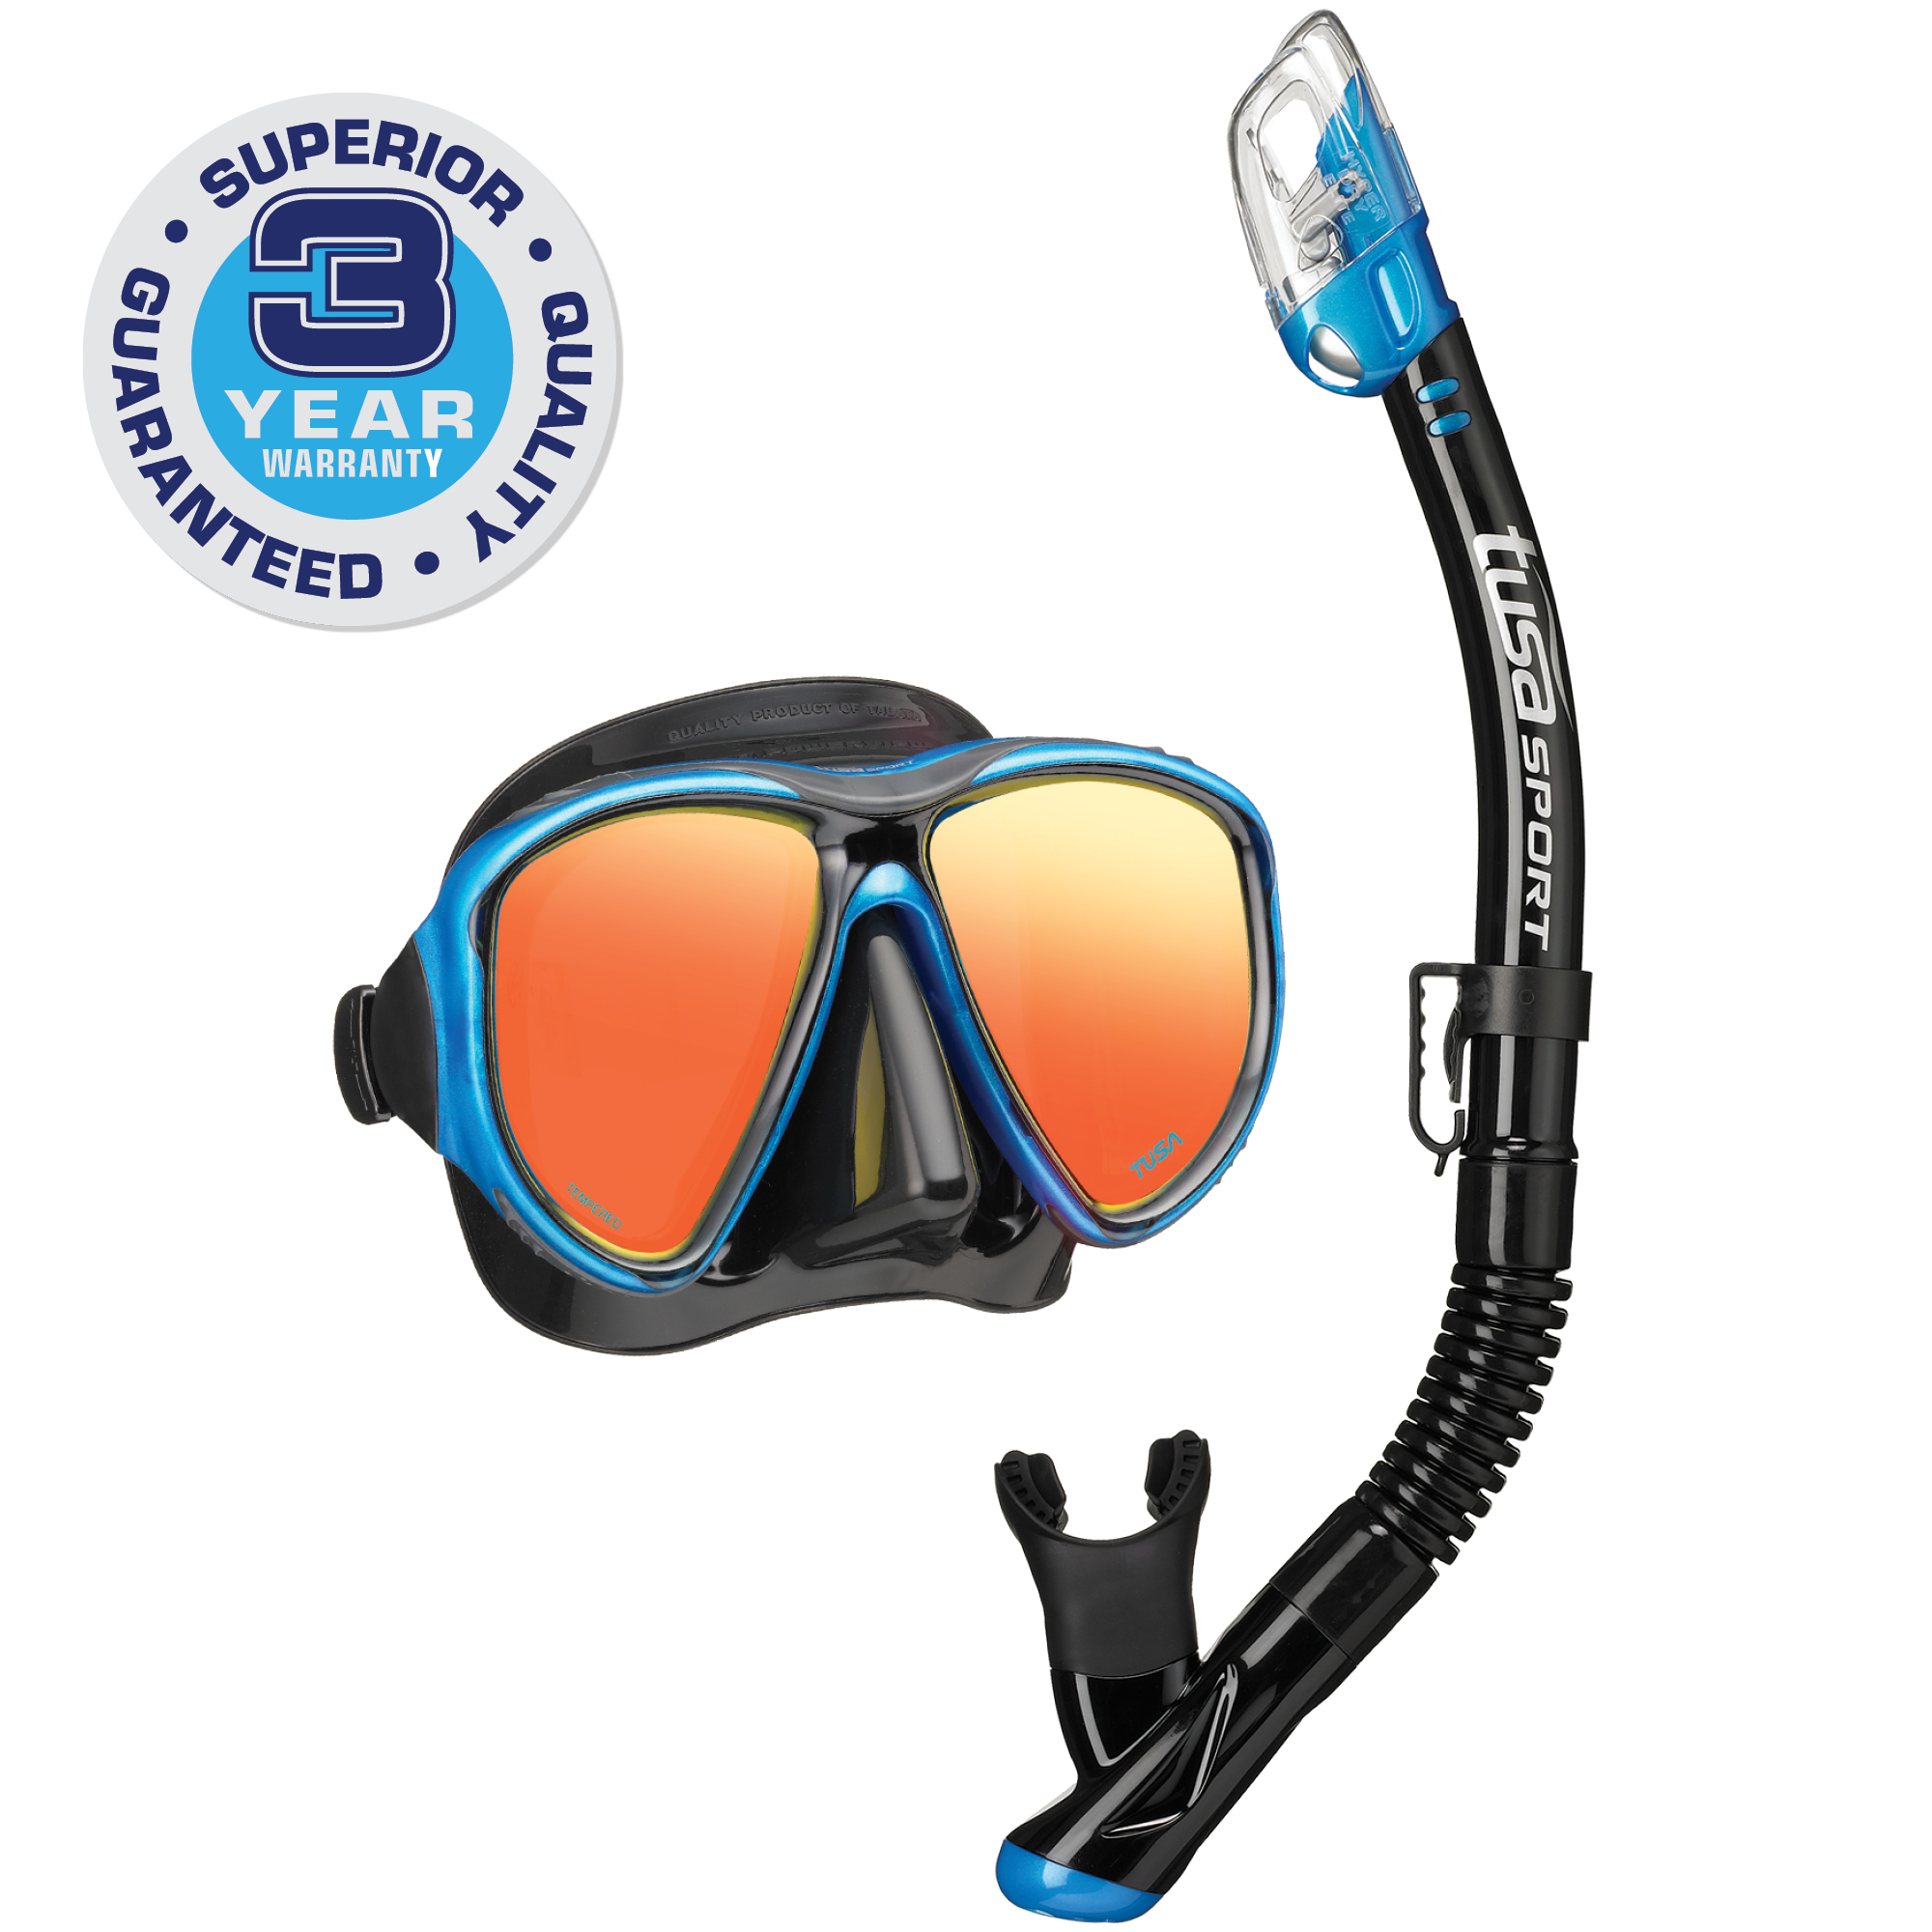 TUSA Sport Adult Powerview Mirrored Mask and Dry Snorkel Combo